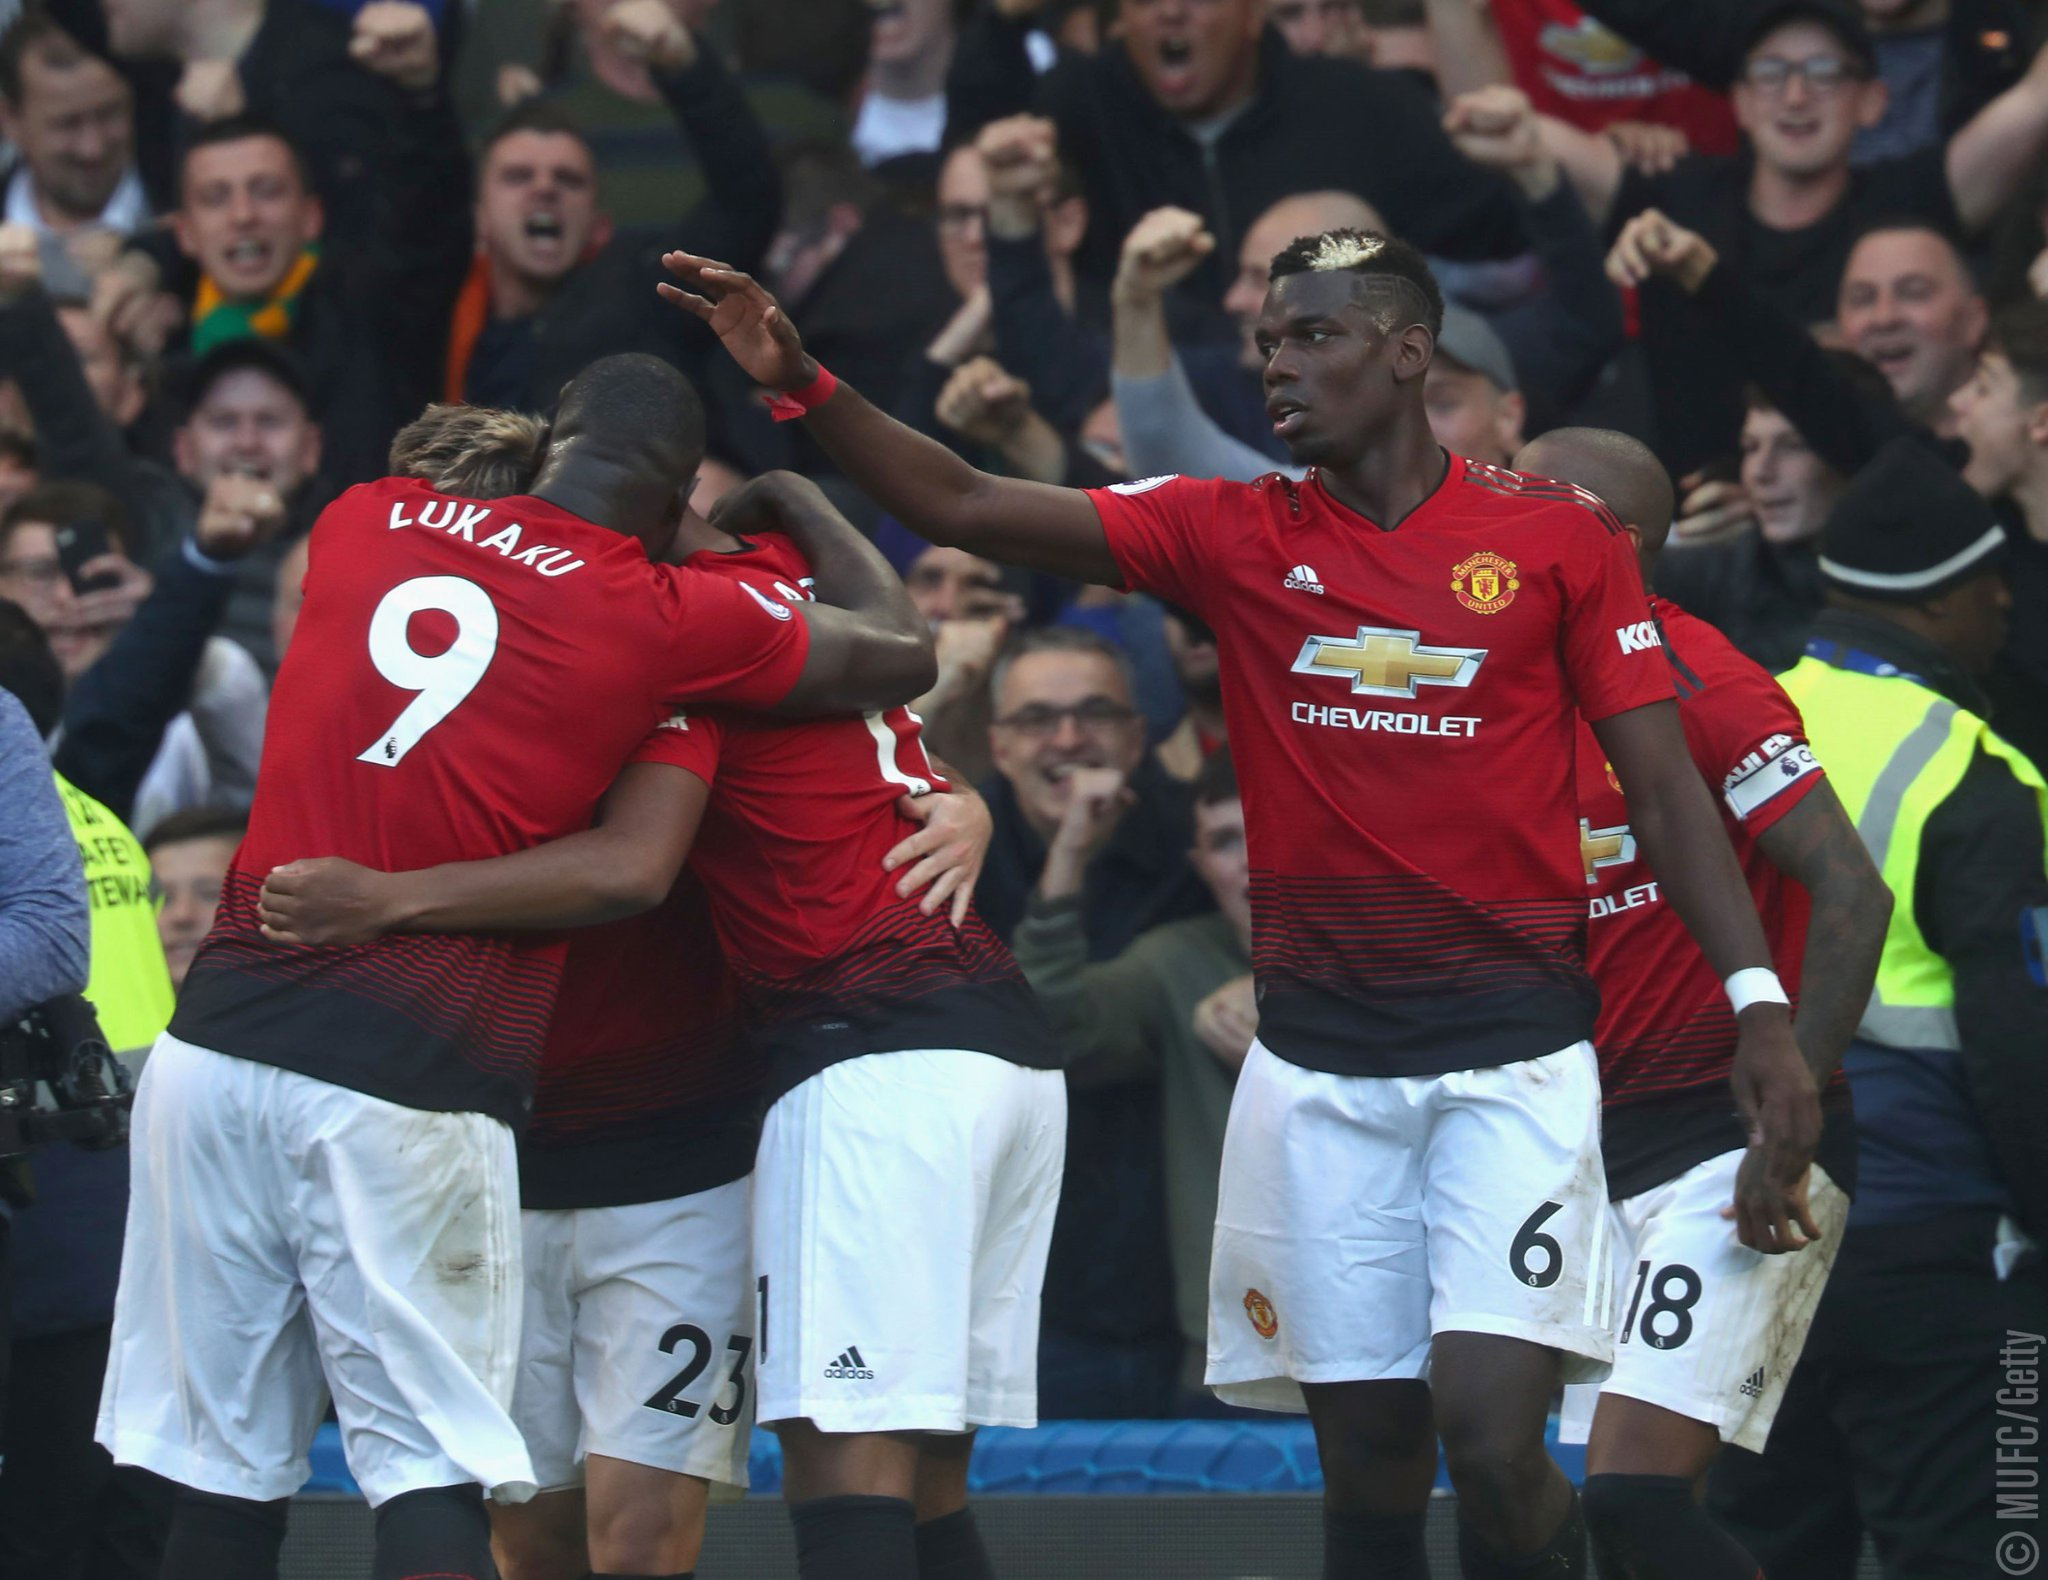 So close to victory after a stunning second-half comeback, but it wasn't to be.  #MUFC #CHEMUN https://t.co/vuzFGG7Xj2